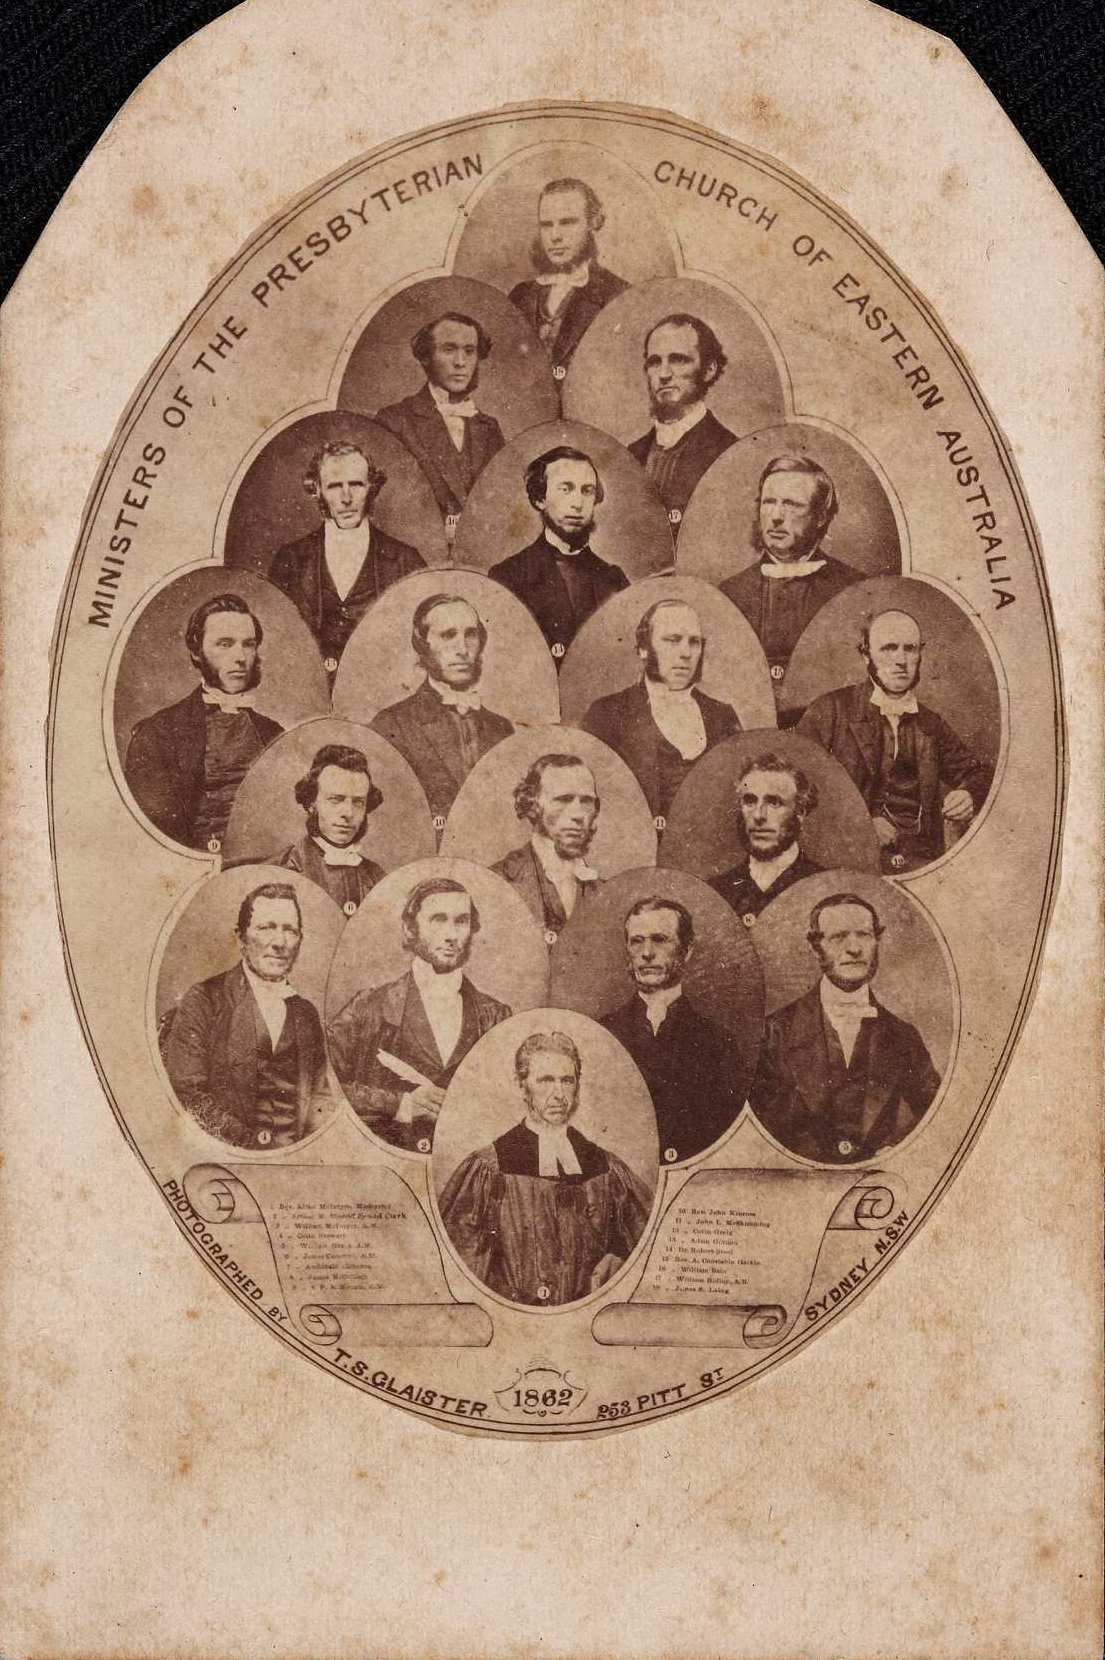 Ministers of the Presbyterian Church of Eastern Australia, 1862 / photographed by T S Glaister